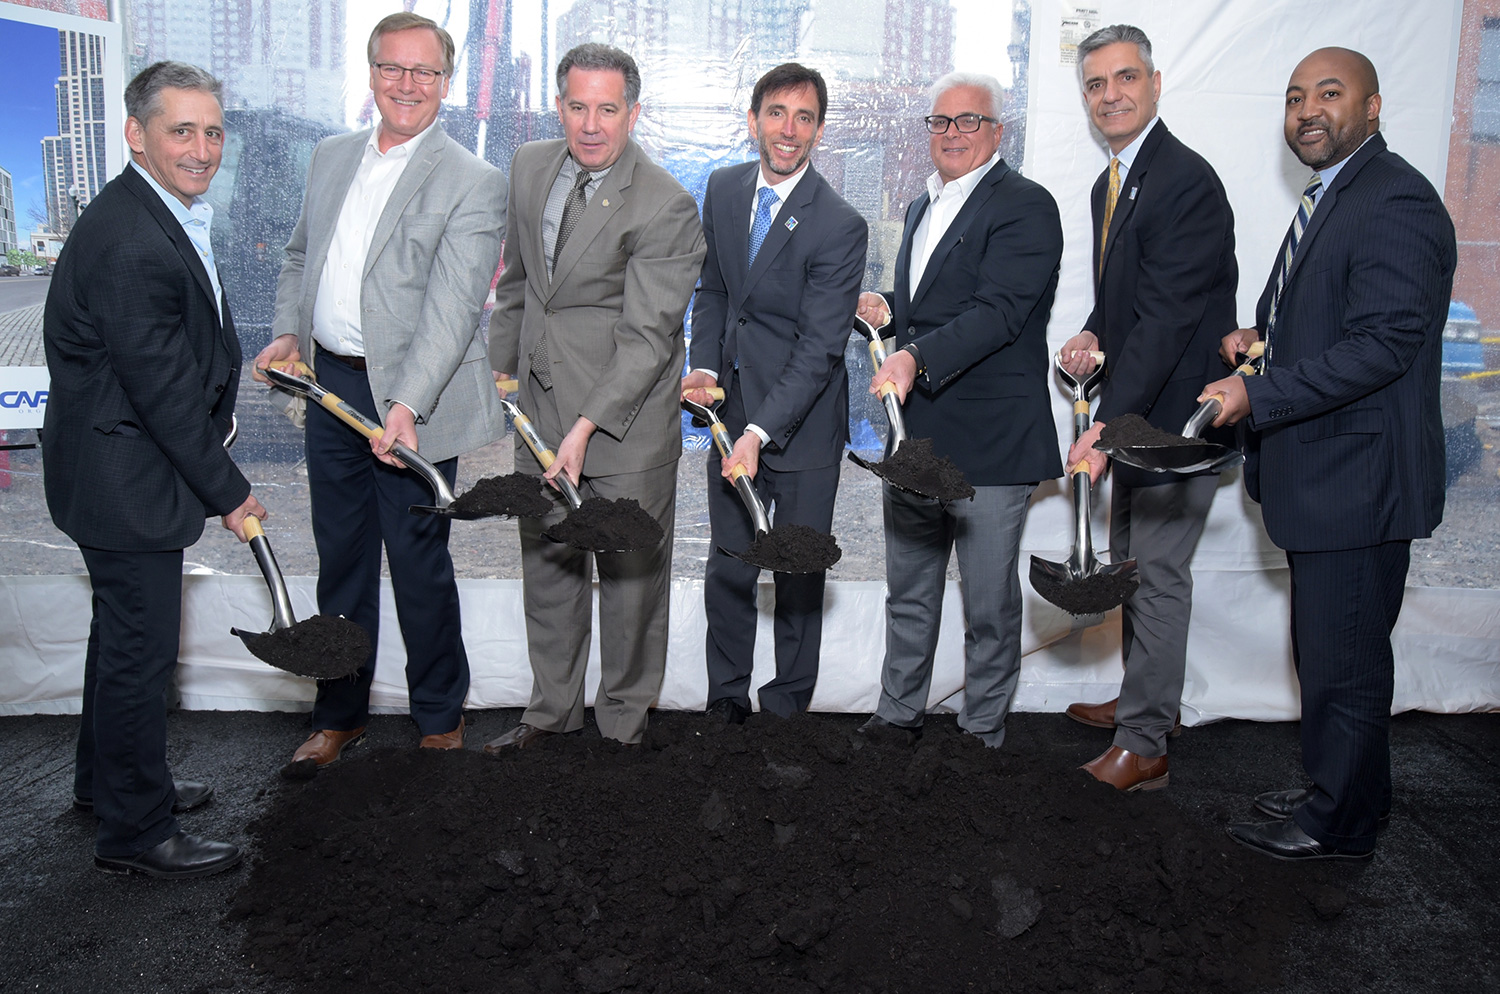 Photos from The Standard groundbreaking ceremony in 2018. From left, Bruce Berg, Cappelli Organization; Rob Dirks, Principal Real Estate Investors, LLC; New Rochelle City Manager Chuck Strome; New Rochelle Mayor Noam Bramson; Louis Cappelli, Cappelli Organization; New Rochelle Planning Commissioner Luiz Aragon, and District 3 Councilman Jared Rice